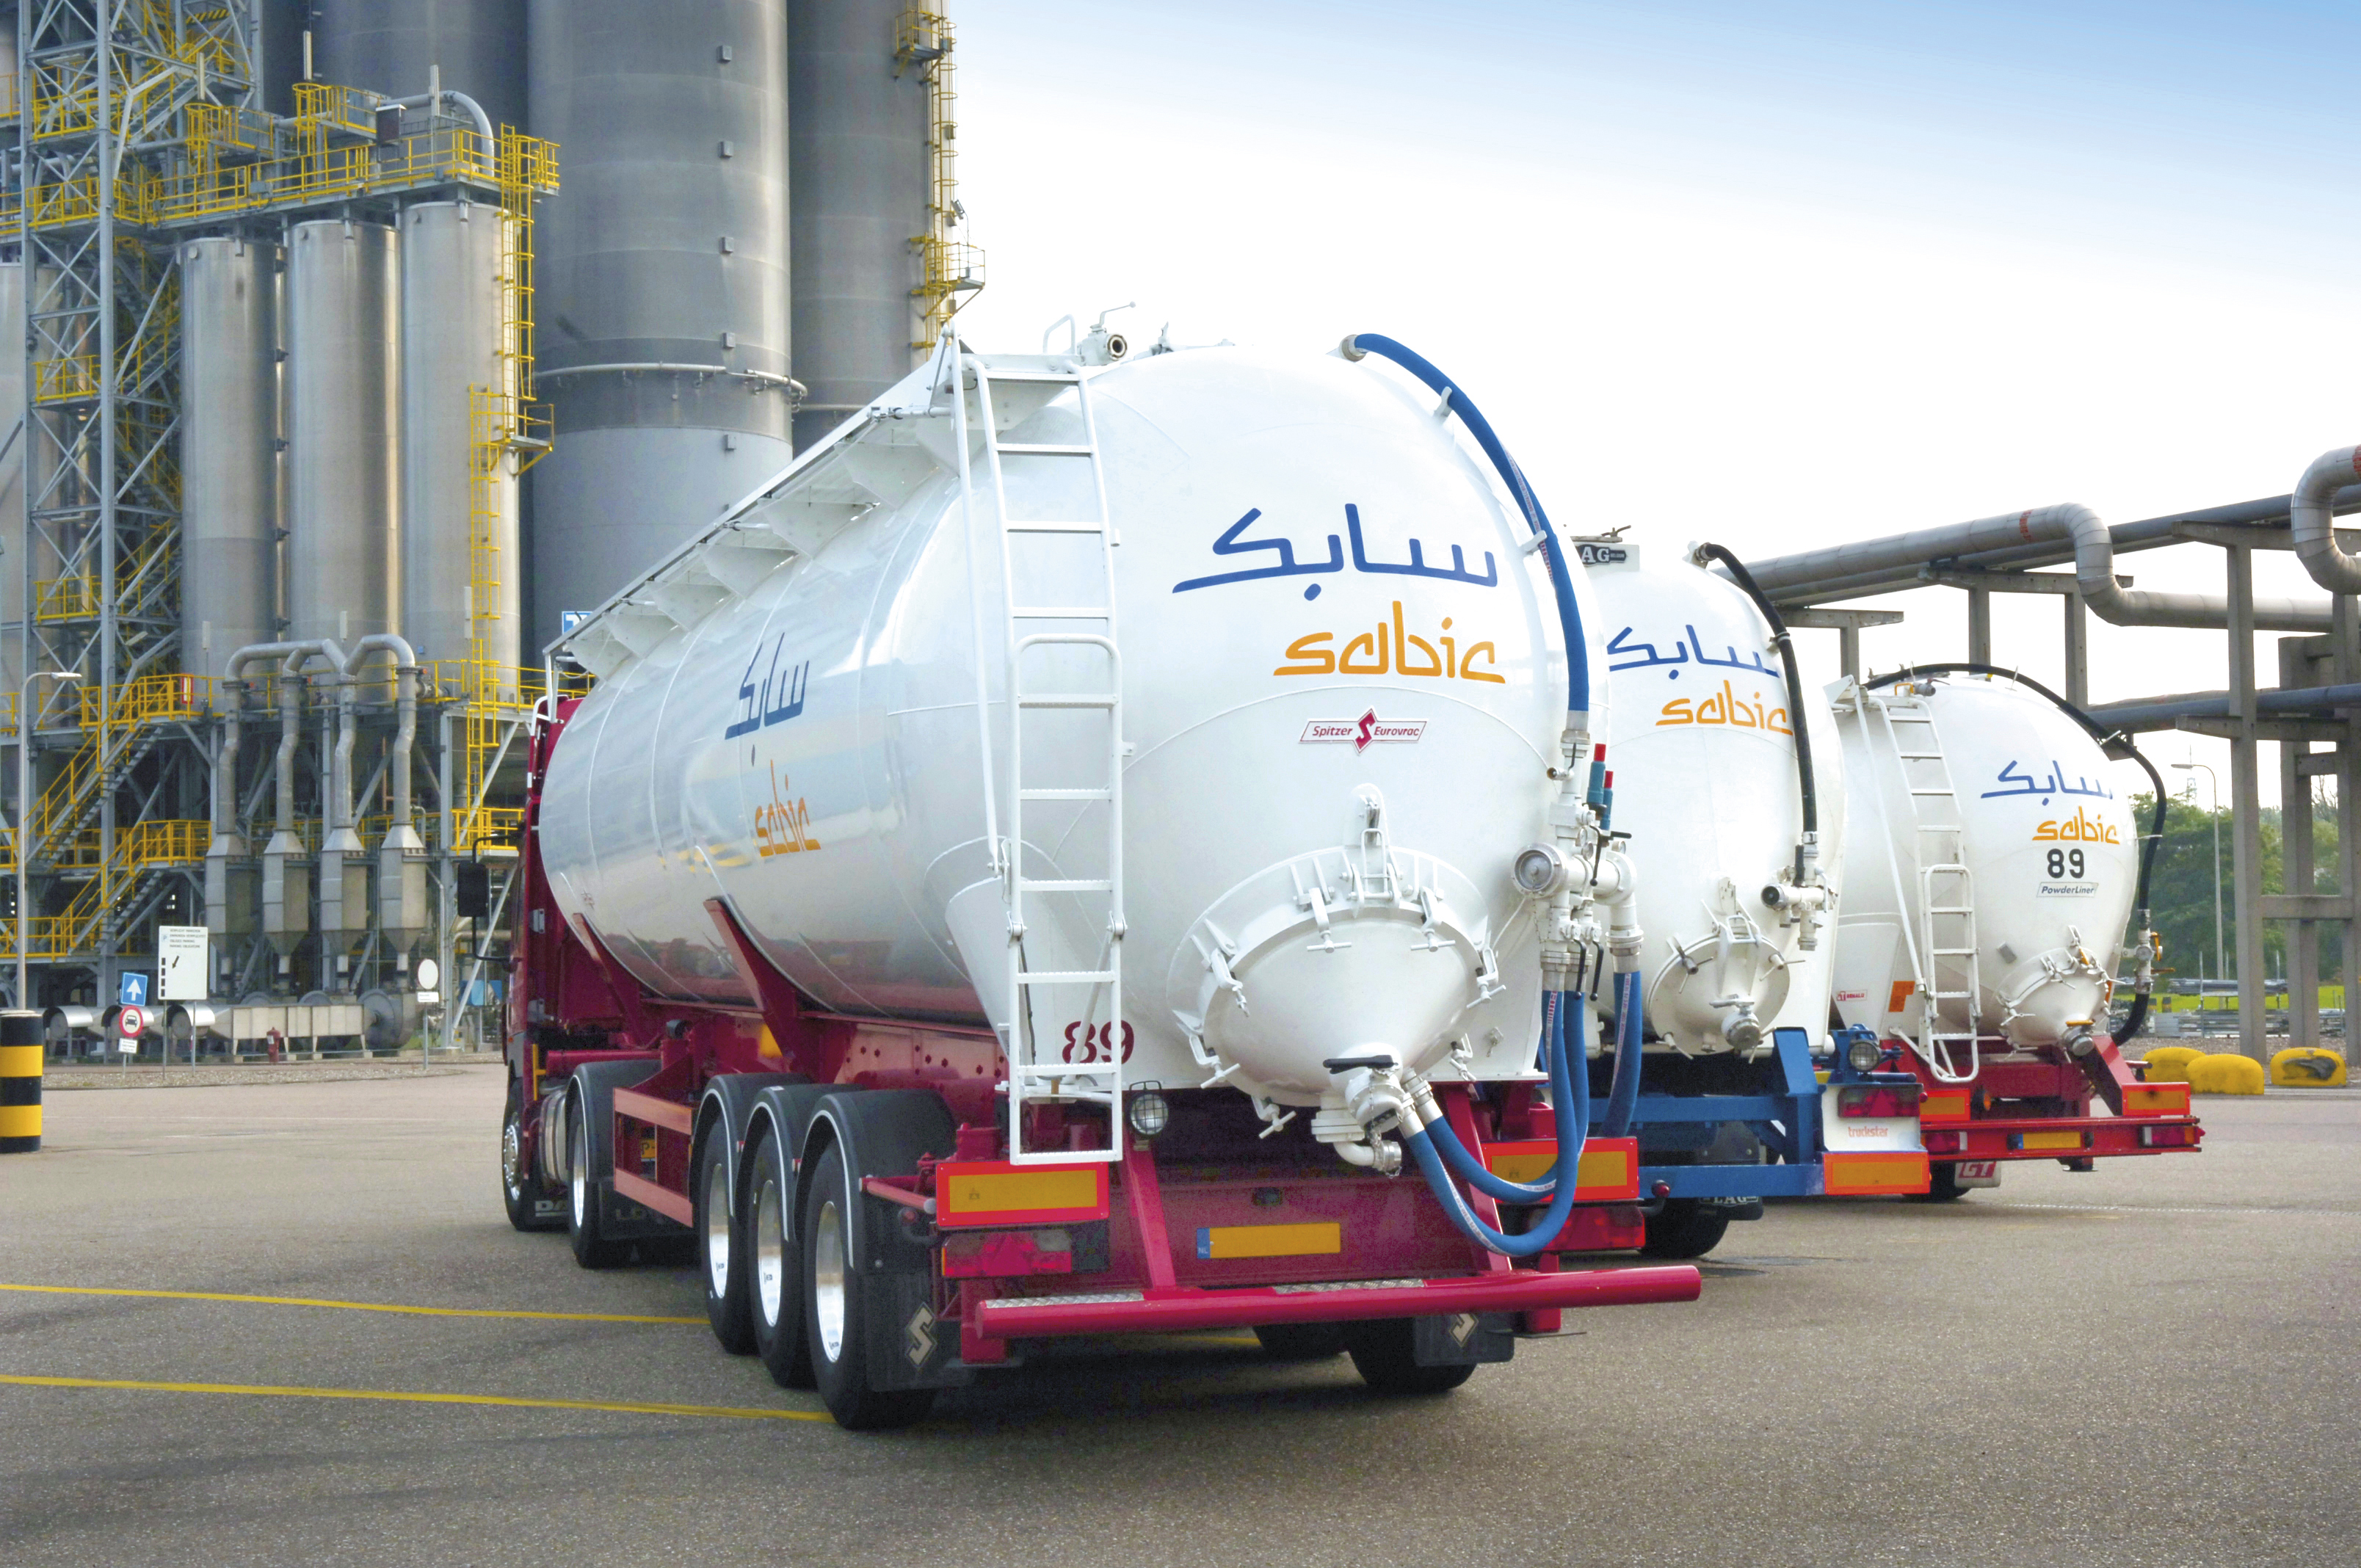 SABIC highlights innovation with details of world's largest CO2